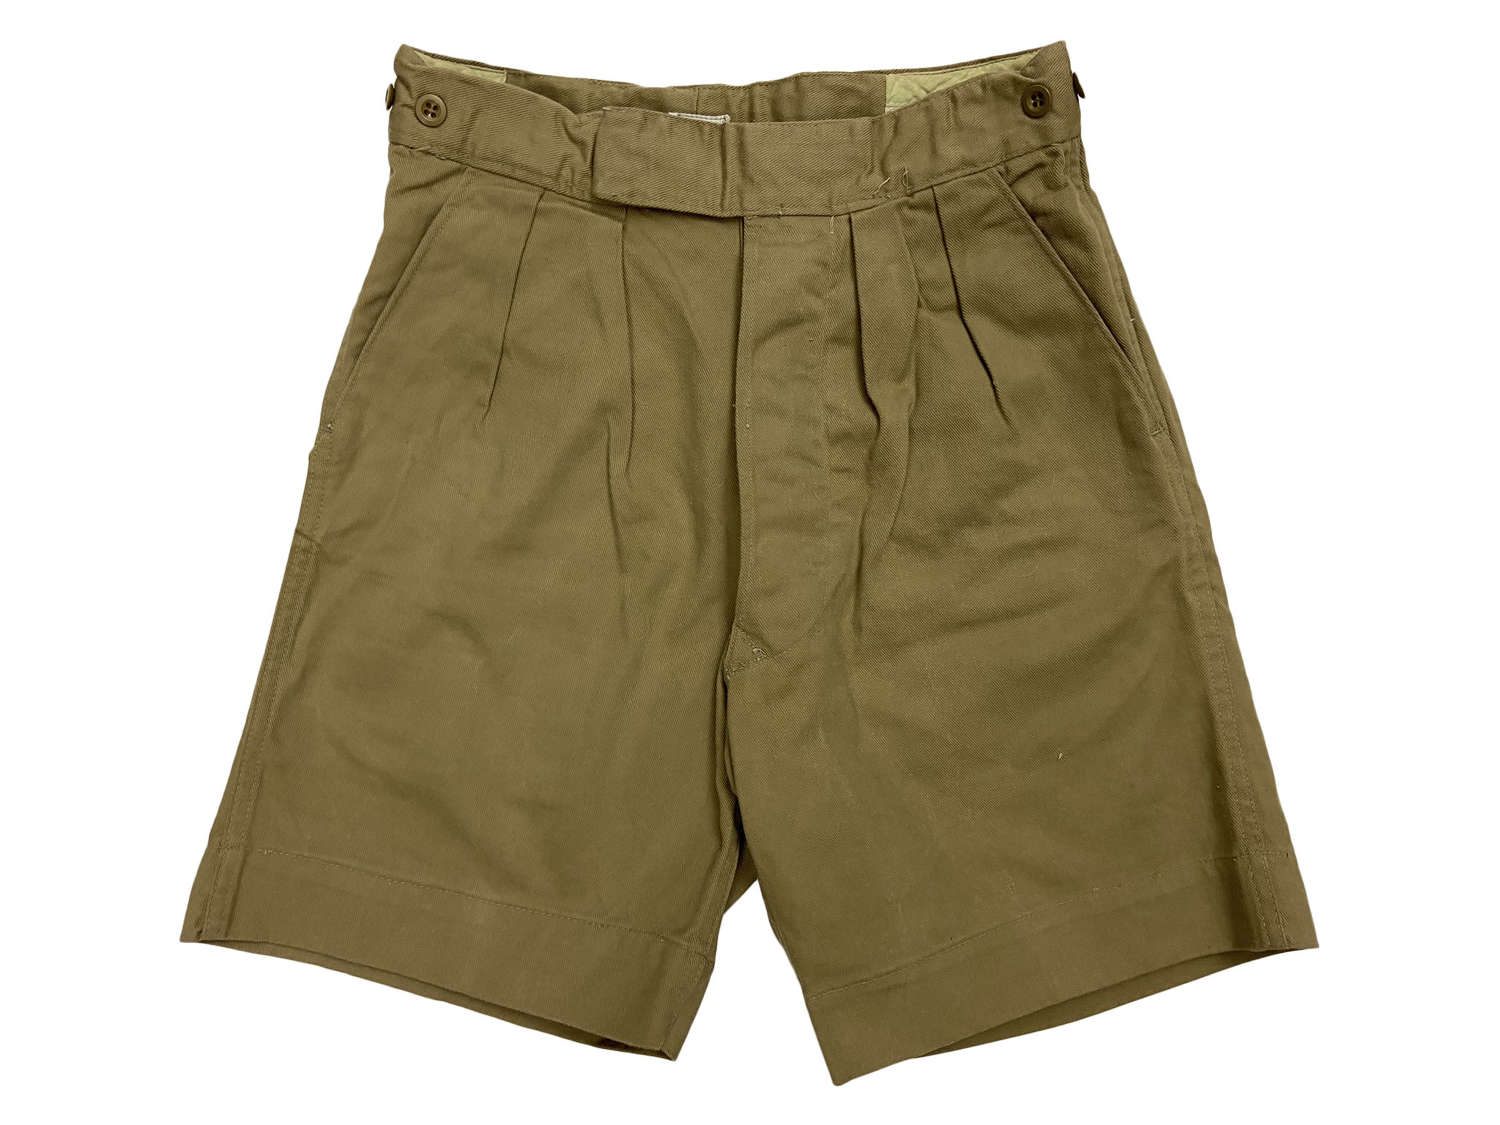 Original 1950s Khaki Drill Shorts by 'Turbex'